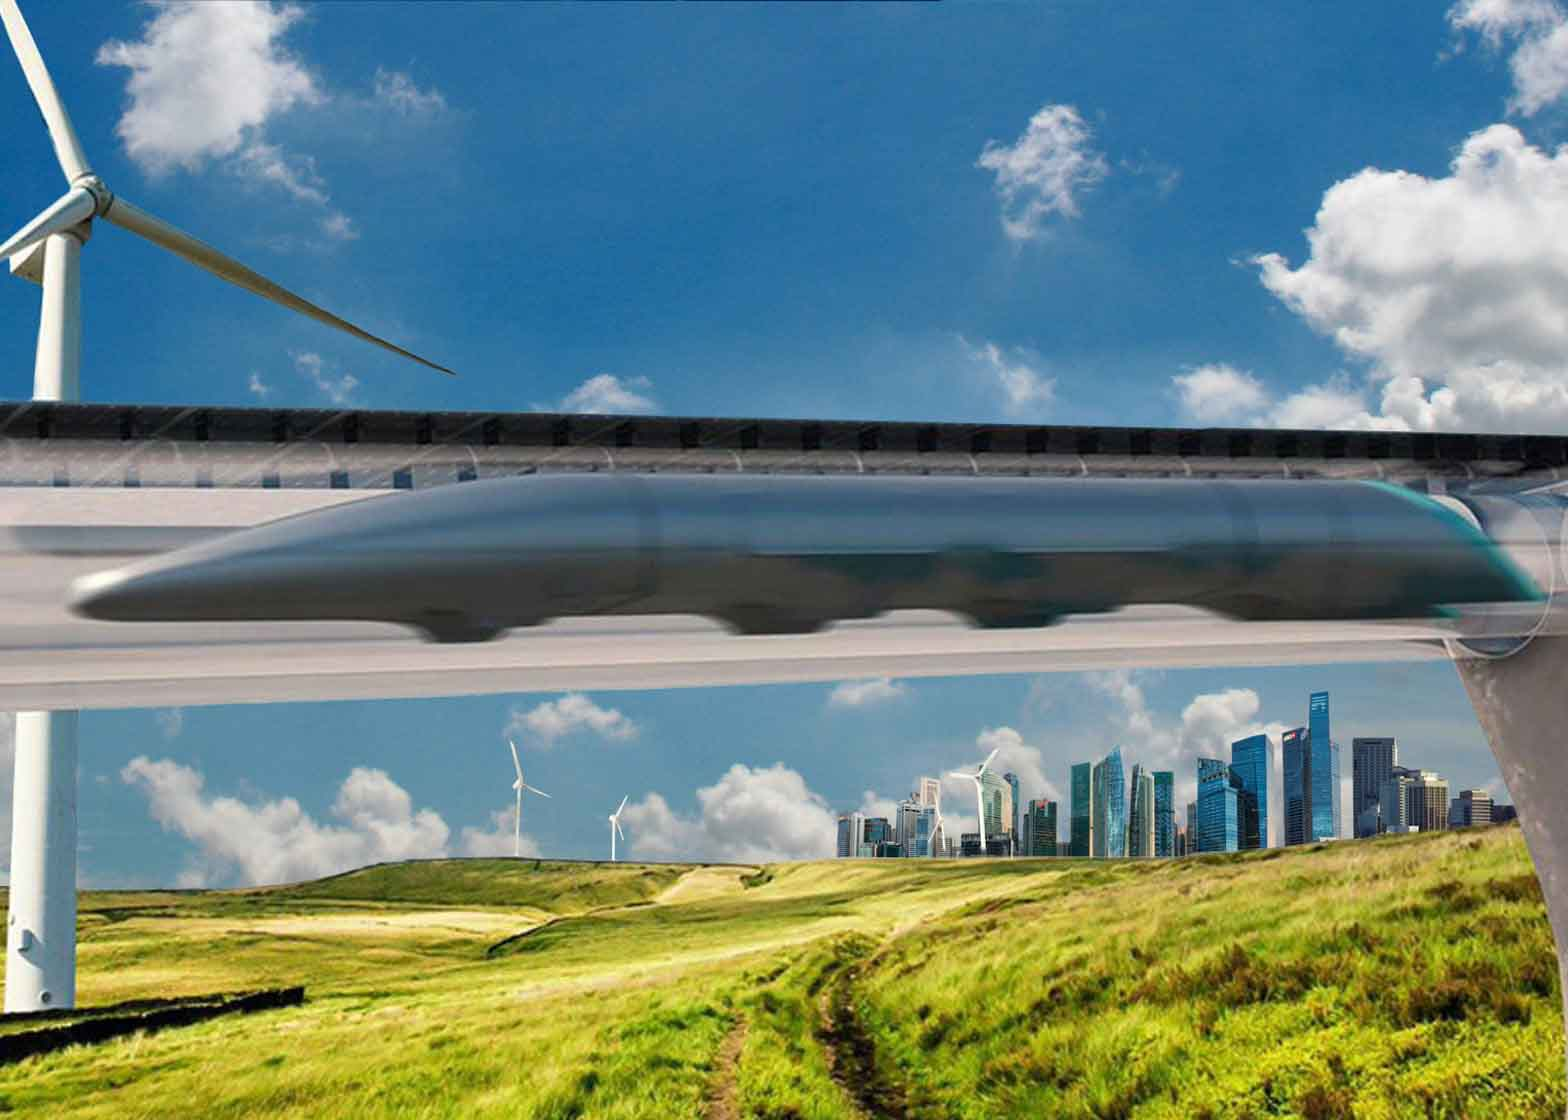 hyperloop-gets-significant-boost-from-us-transportation-secretary-support-104145_1